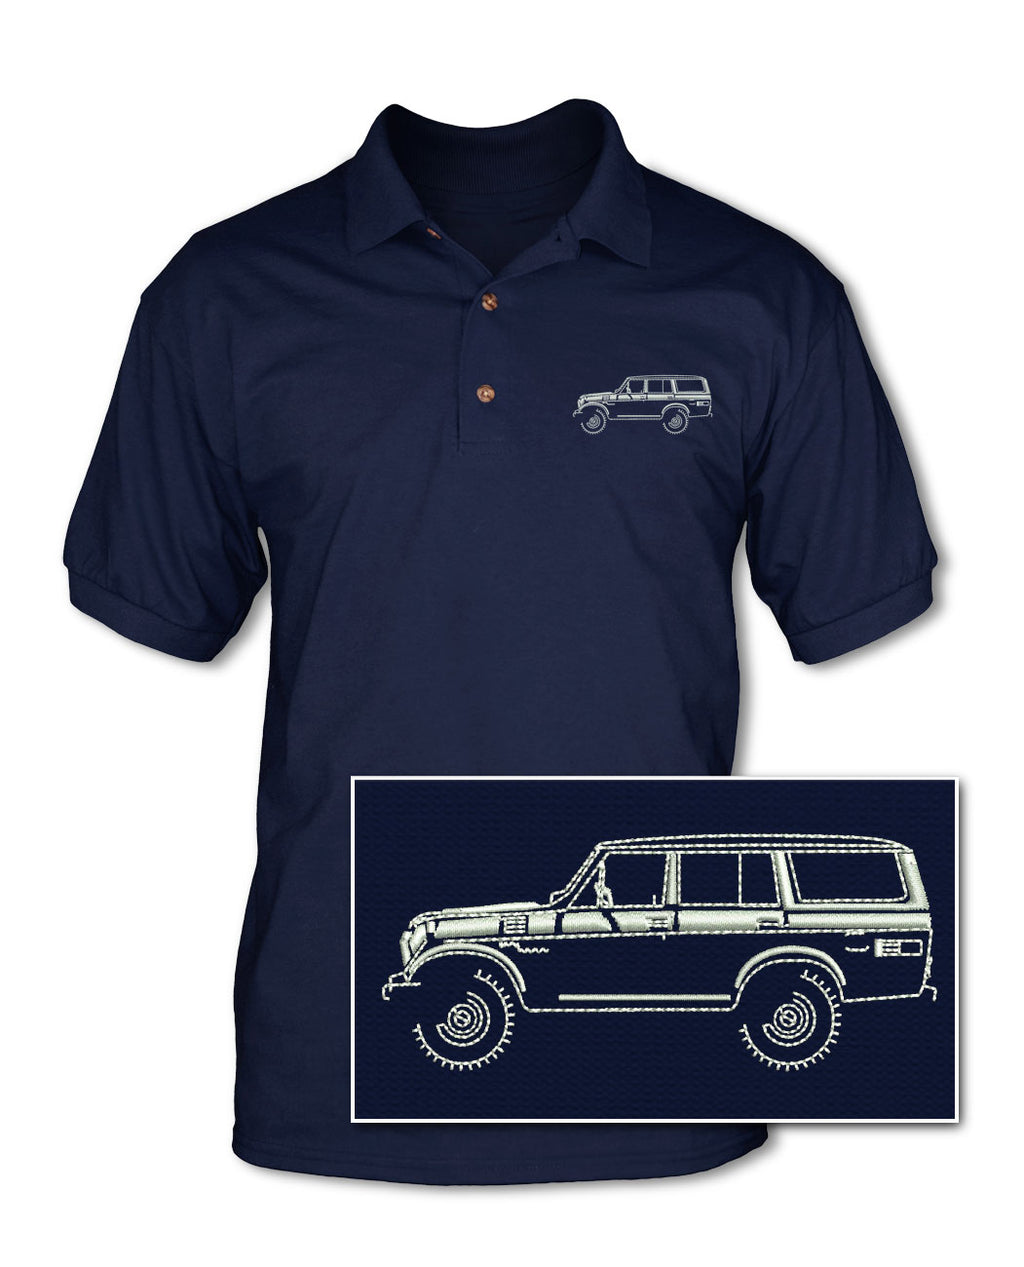 Toyota BJ55 FJ55 Land Cruiser 4x4 Adult Pique Polo Shirt - Side View